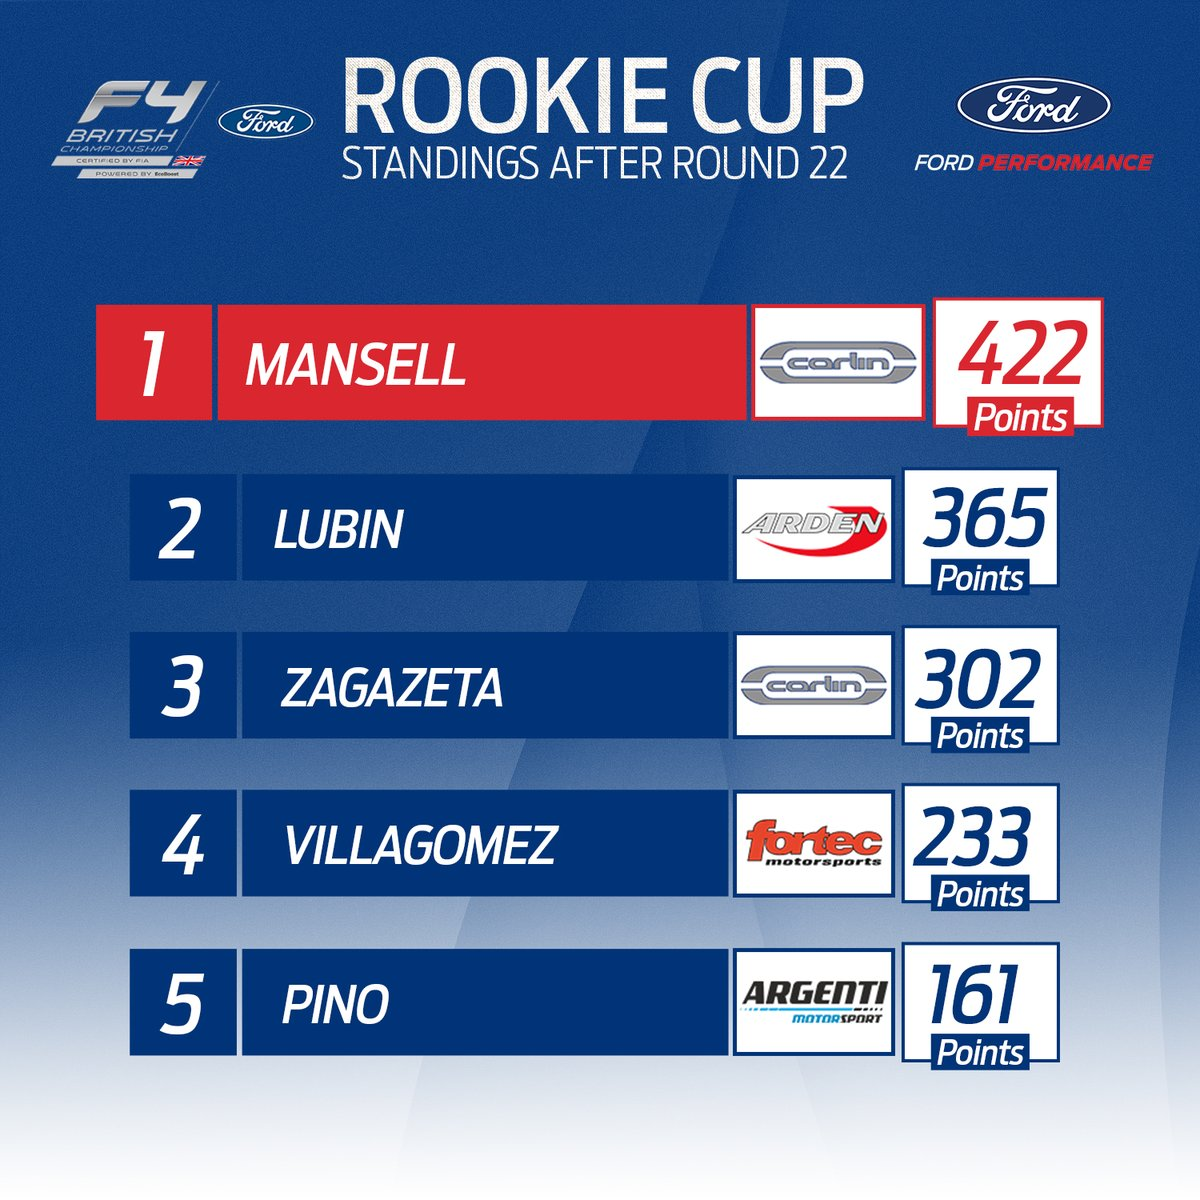 ROOKIE CUP 🏆  @CMansell_Racing can, in theory, win the title by this time tomorrow... 👀🏆  But first he'll need another 1⃣8⃣ point swing over closest challenger @LubinFrederick - this one could go down to the final event!  #BritishF4 | #FordPerformance https://t.co/ZFGKhamwRH